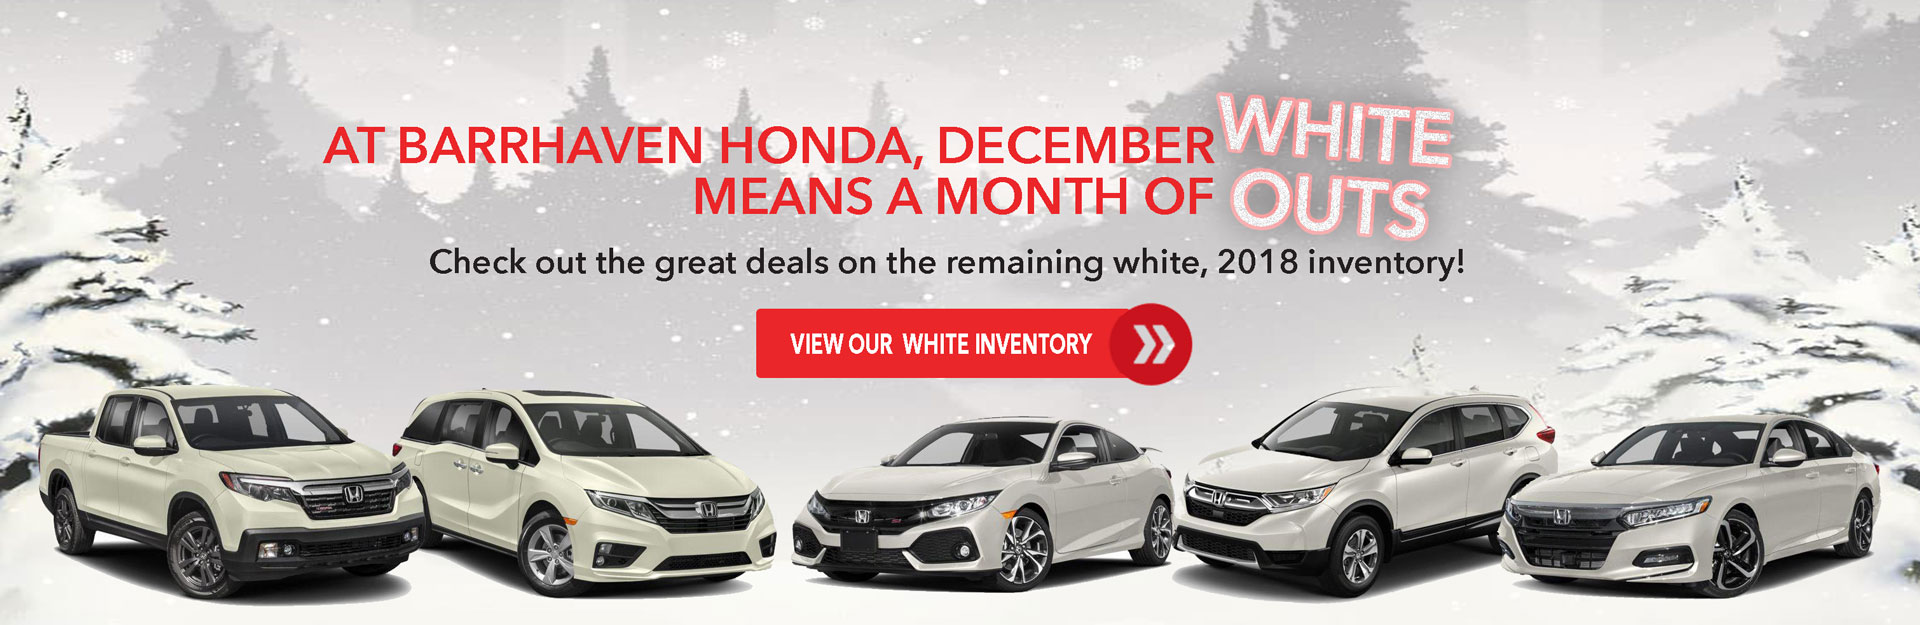 2018 Honda Vehicles for Sale - White Outs